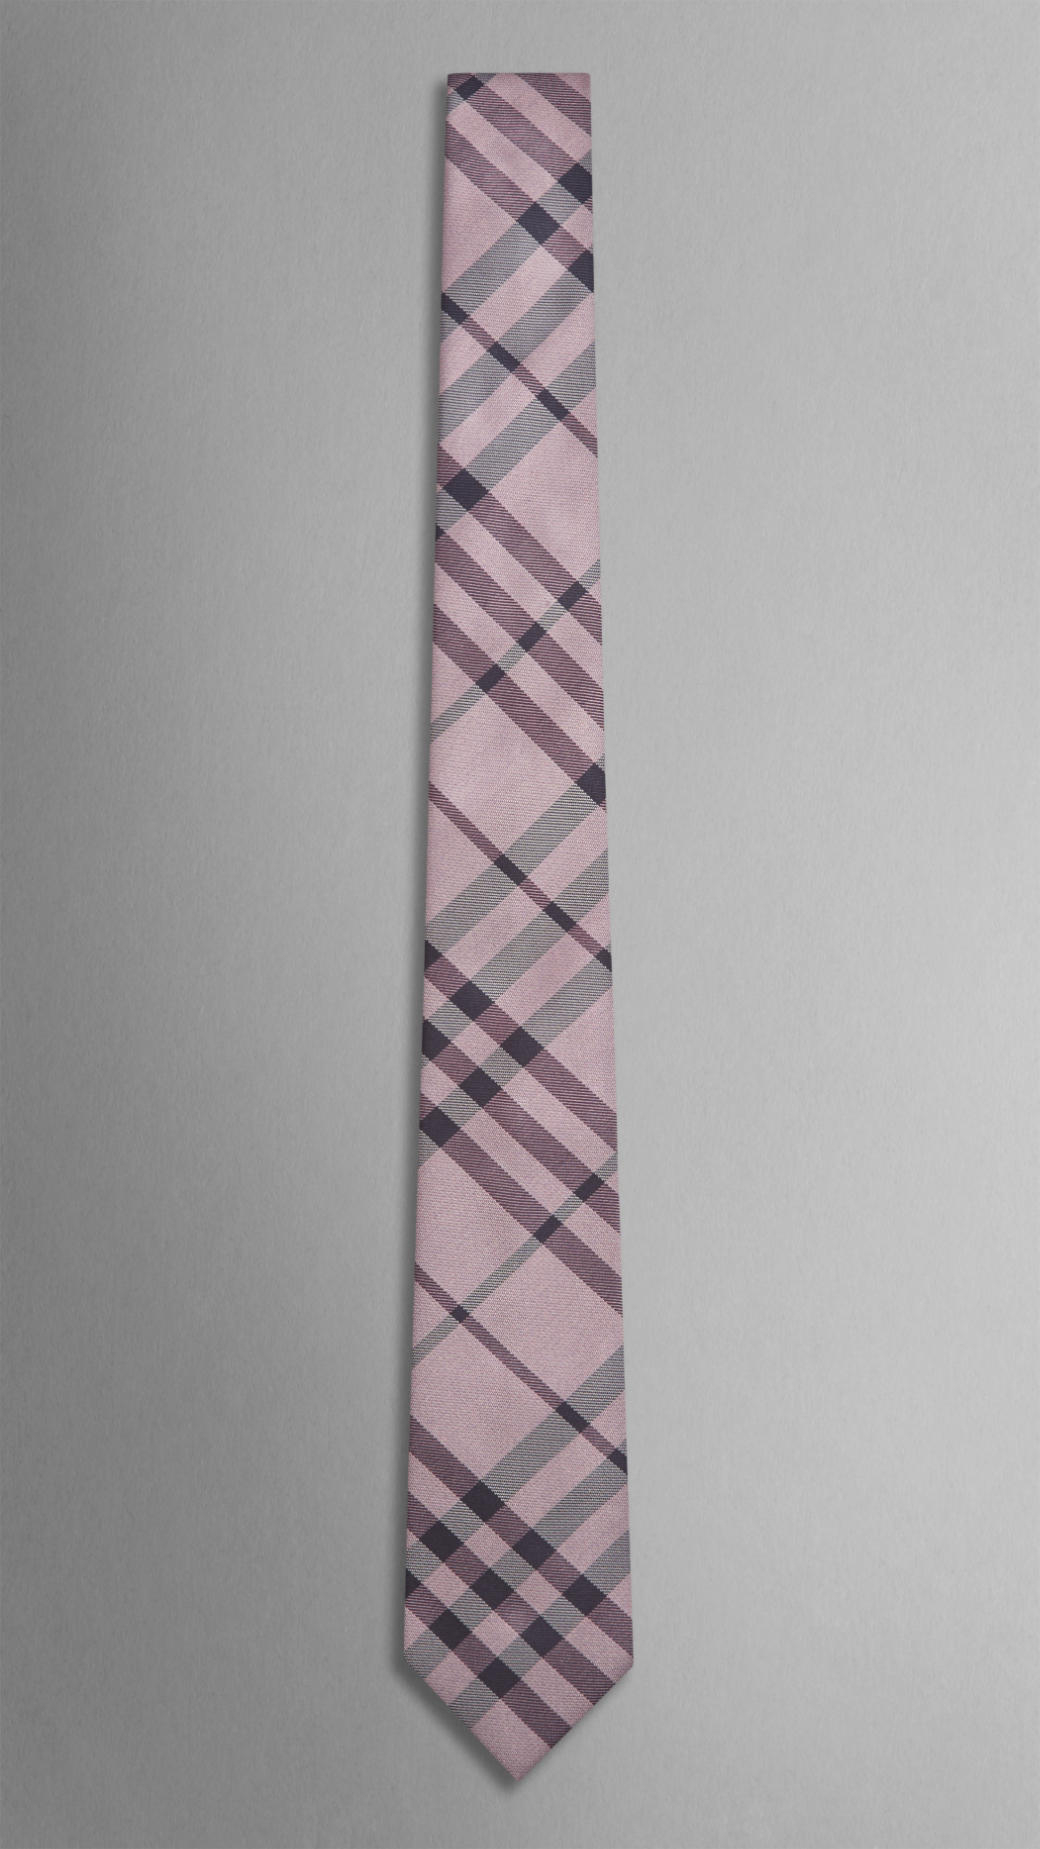 bc9d98c55da9 denmark lyst burberry check silk tie in pink for men a6d40 b84b1